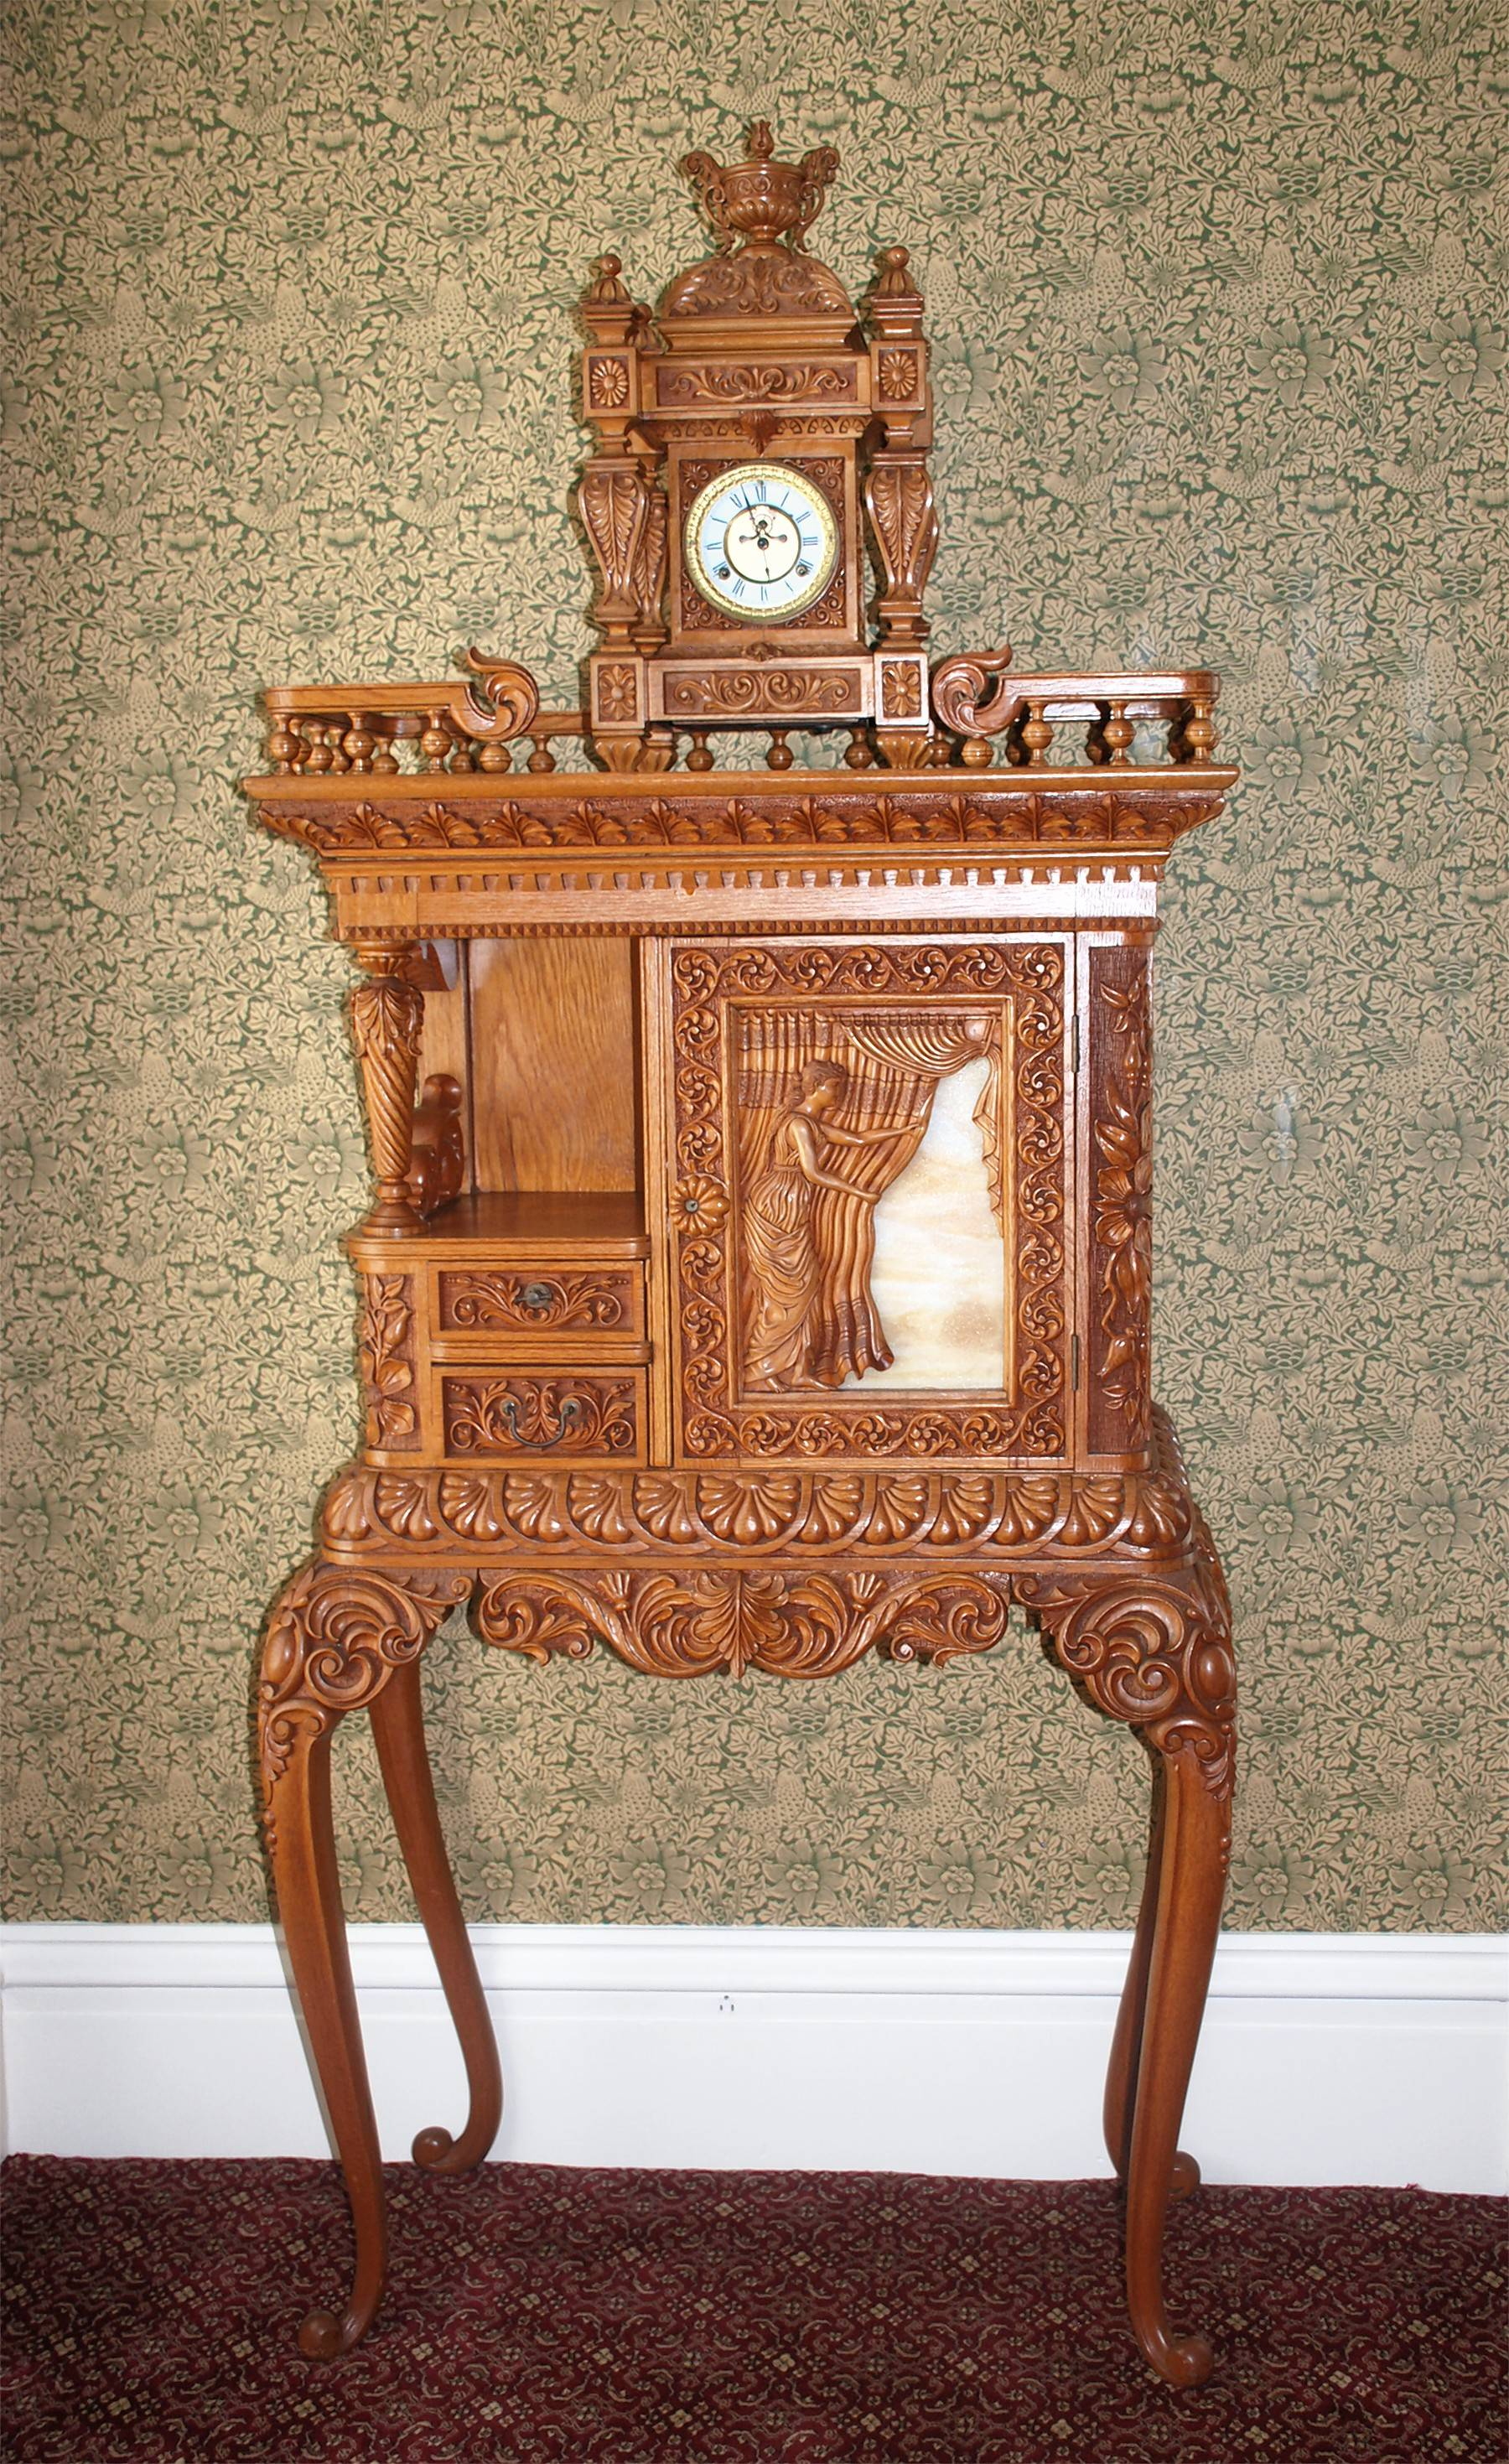 A farmer in Carthage carved this intricate furniture piece for Chicago's Columbian Exposition and then they were donated to the state while Gov. John Altgeld was in office (1893-1897). They now adorn a bedroom dedicated to the 1890s.